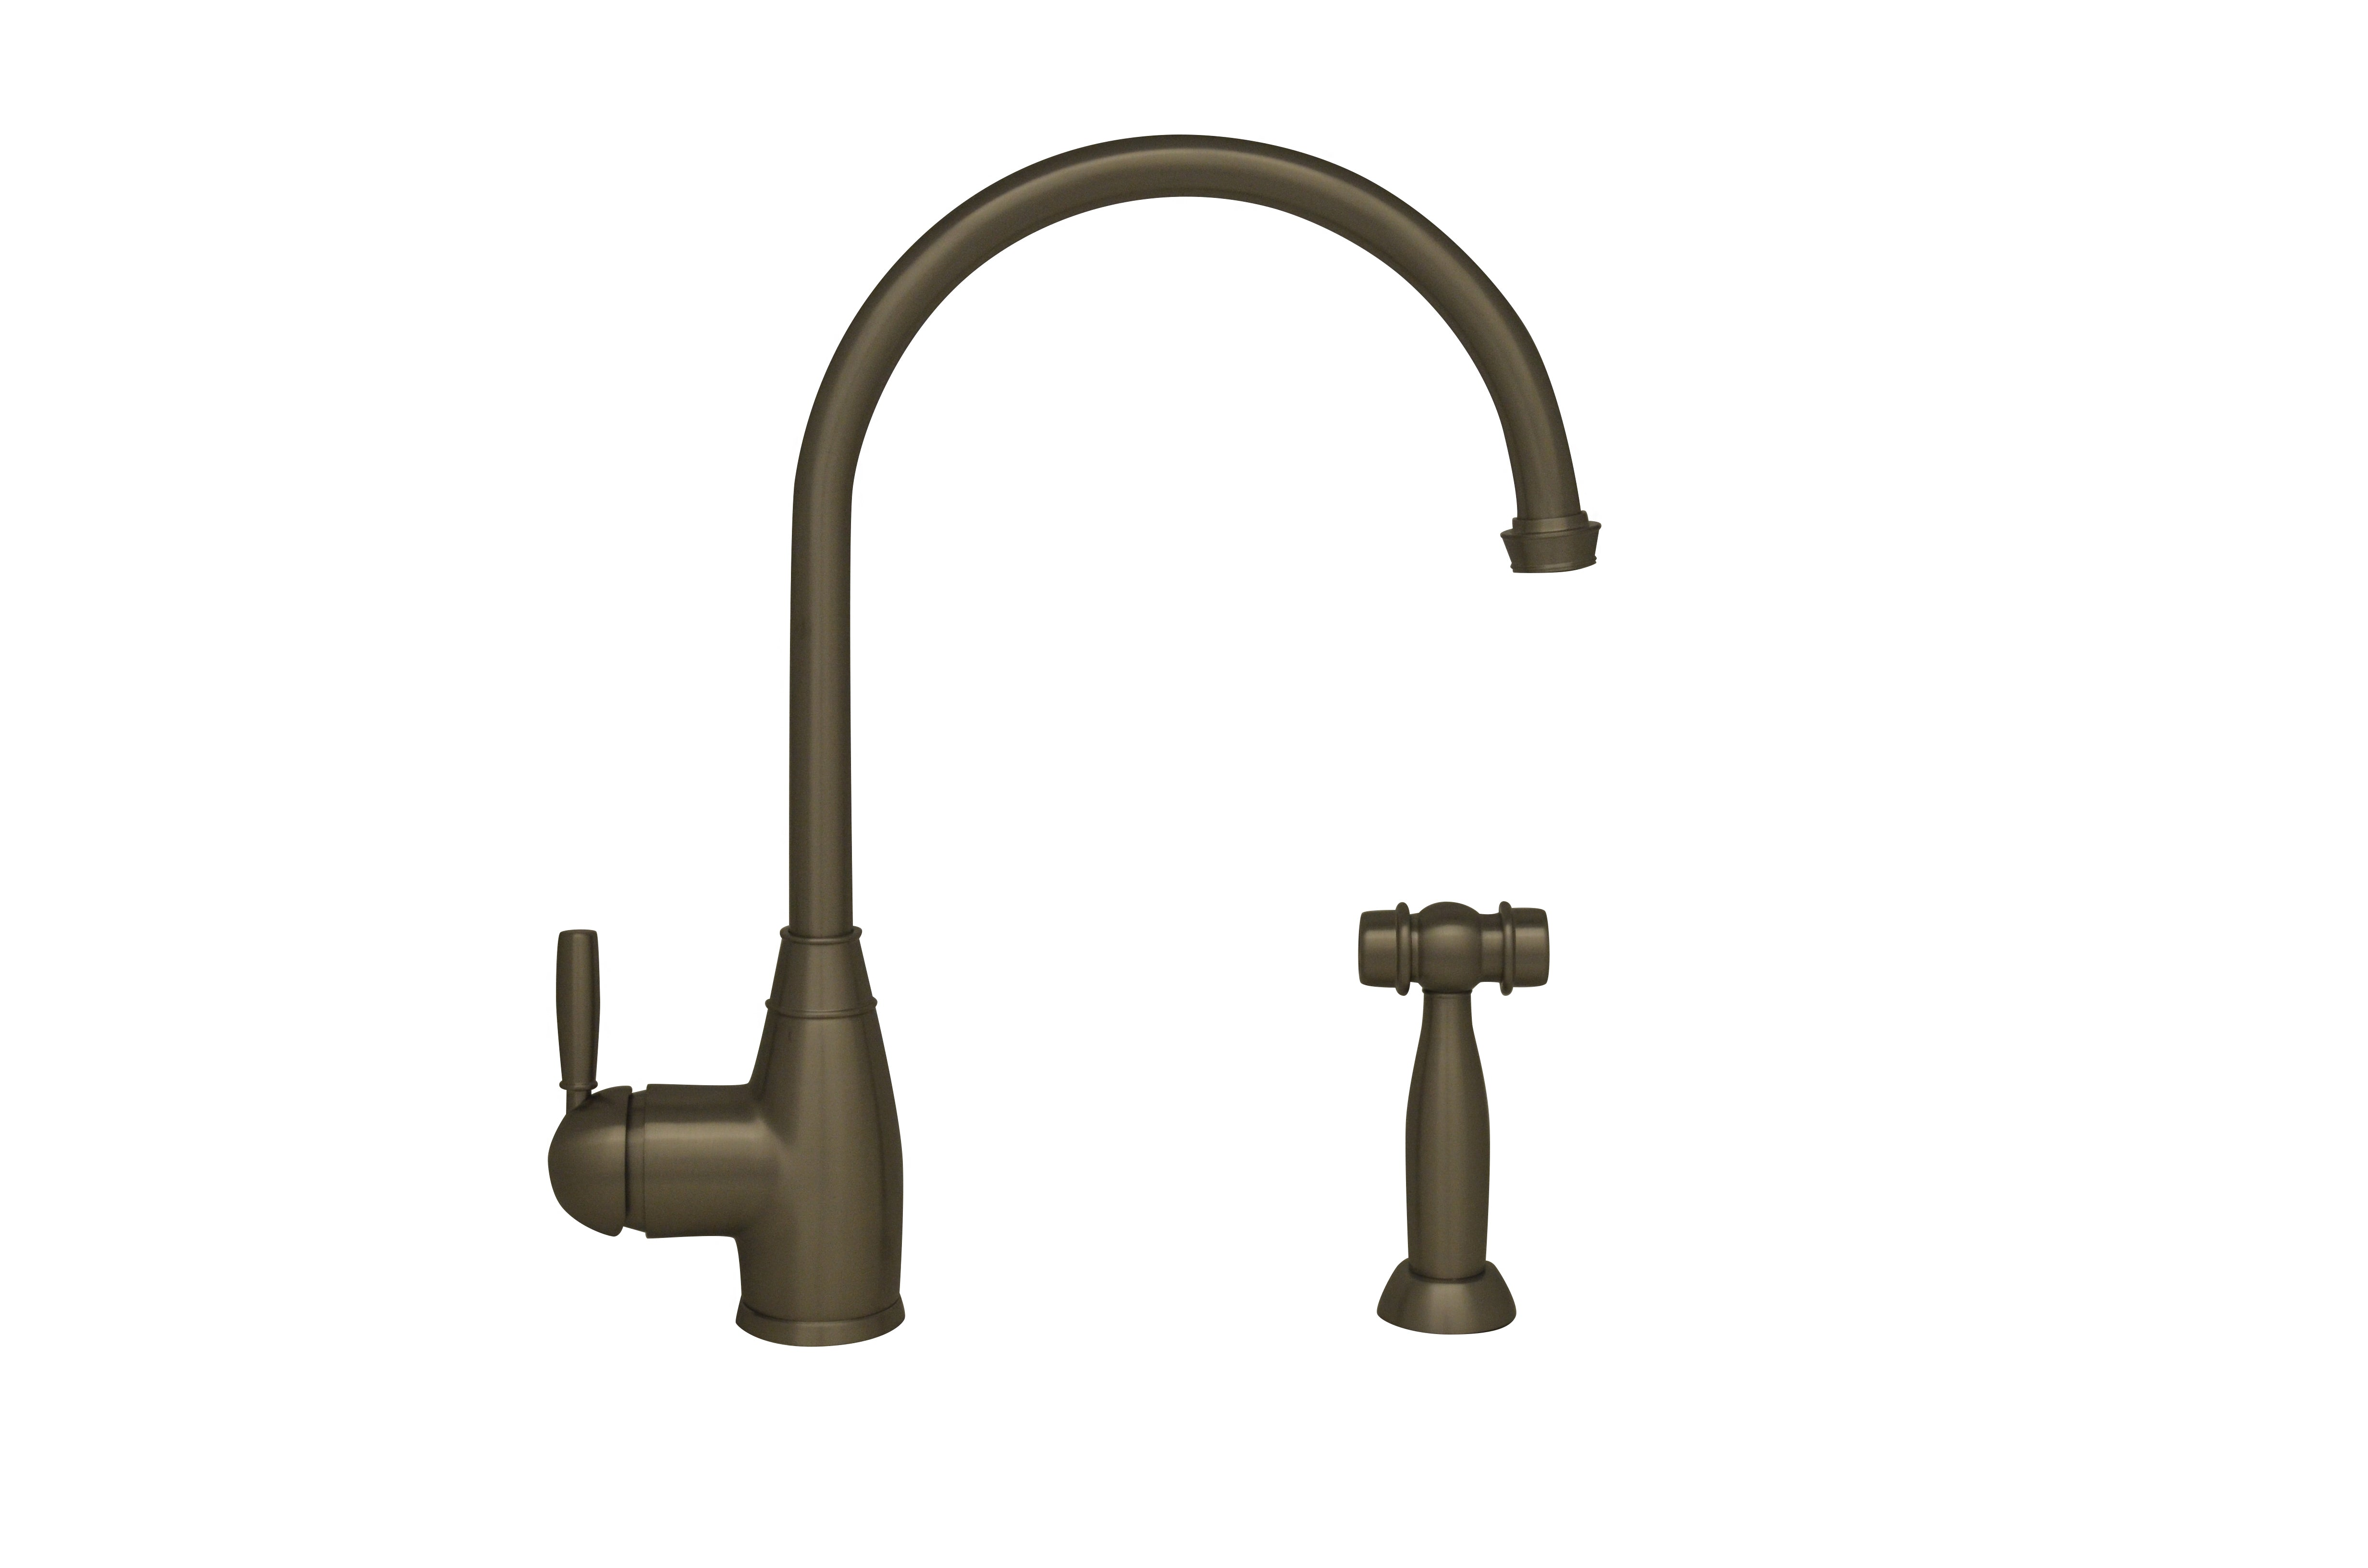 Whitehaus WHQN-34682 Gooseneck Kitchen Faucet with Solid Brass Side Spray